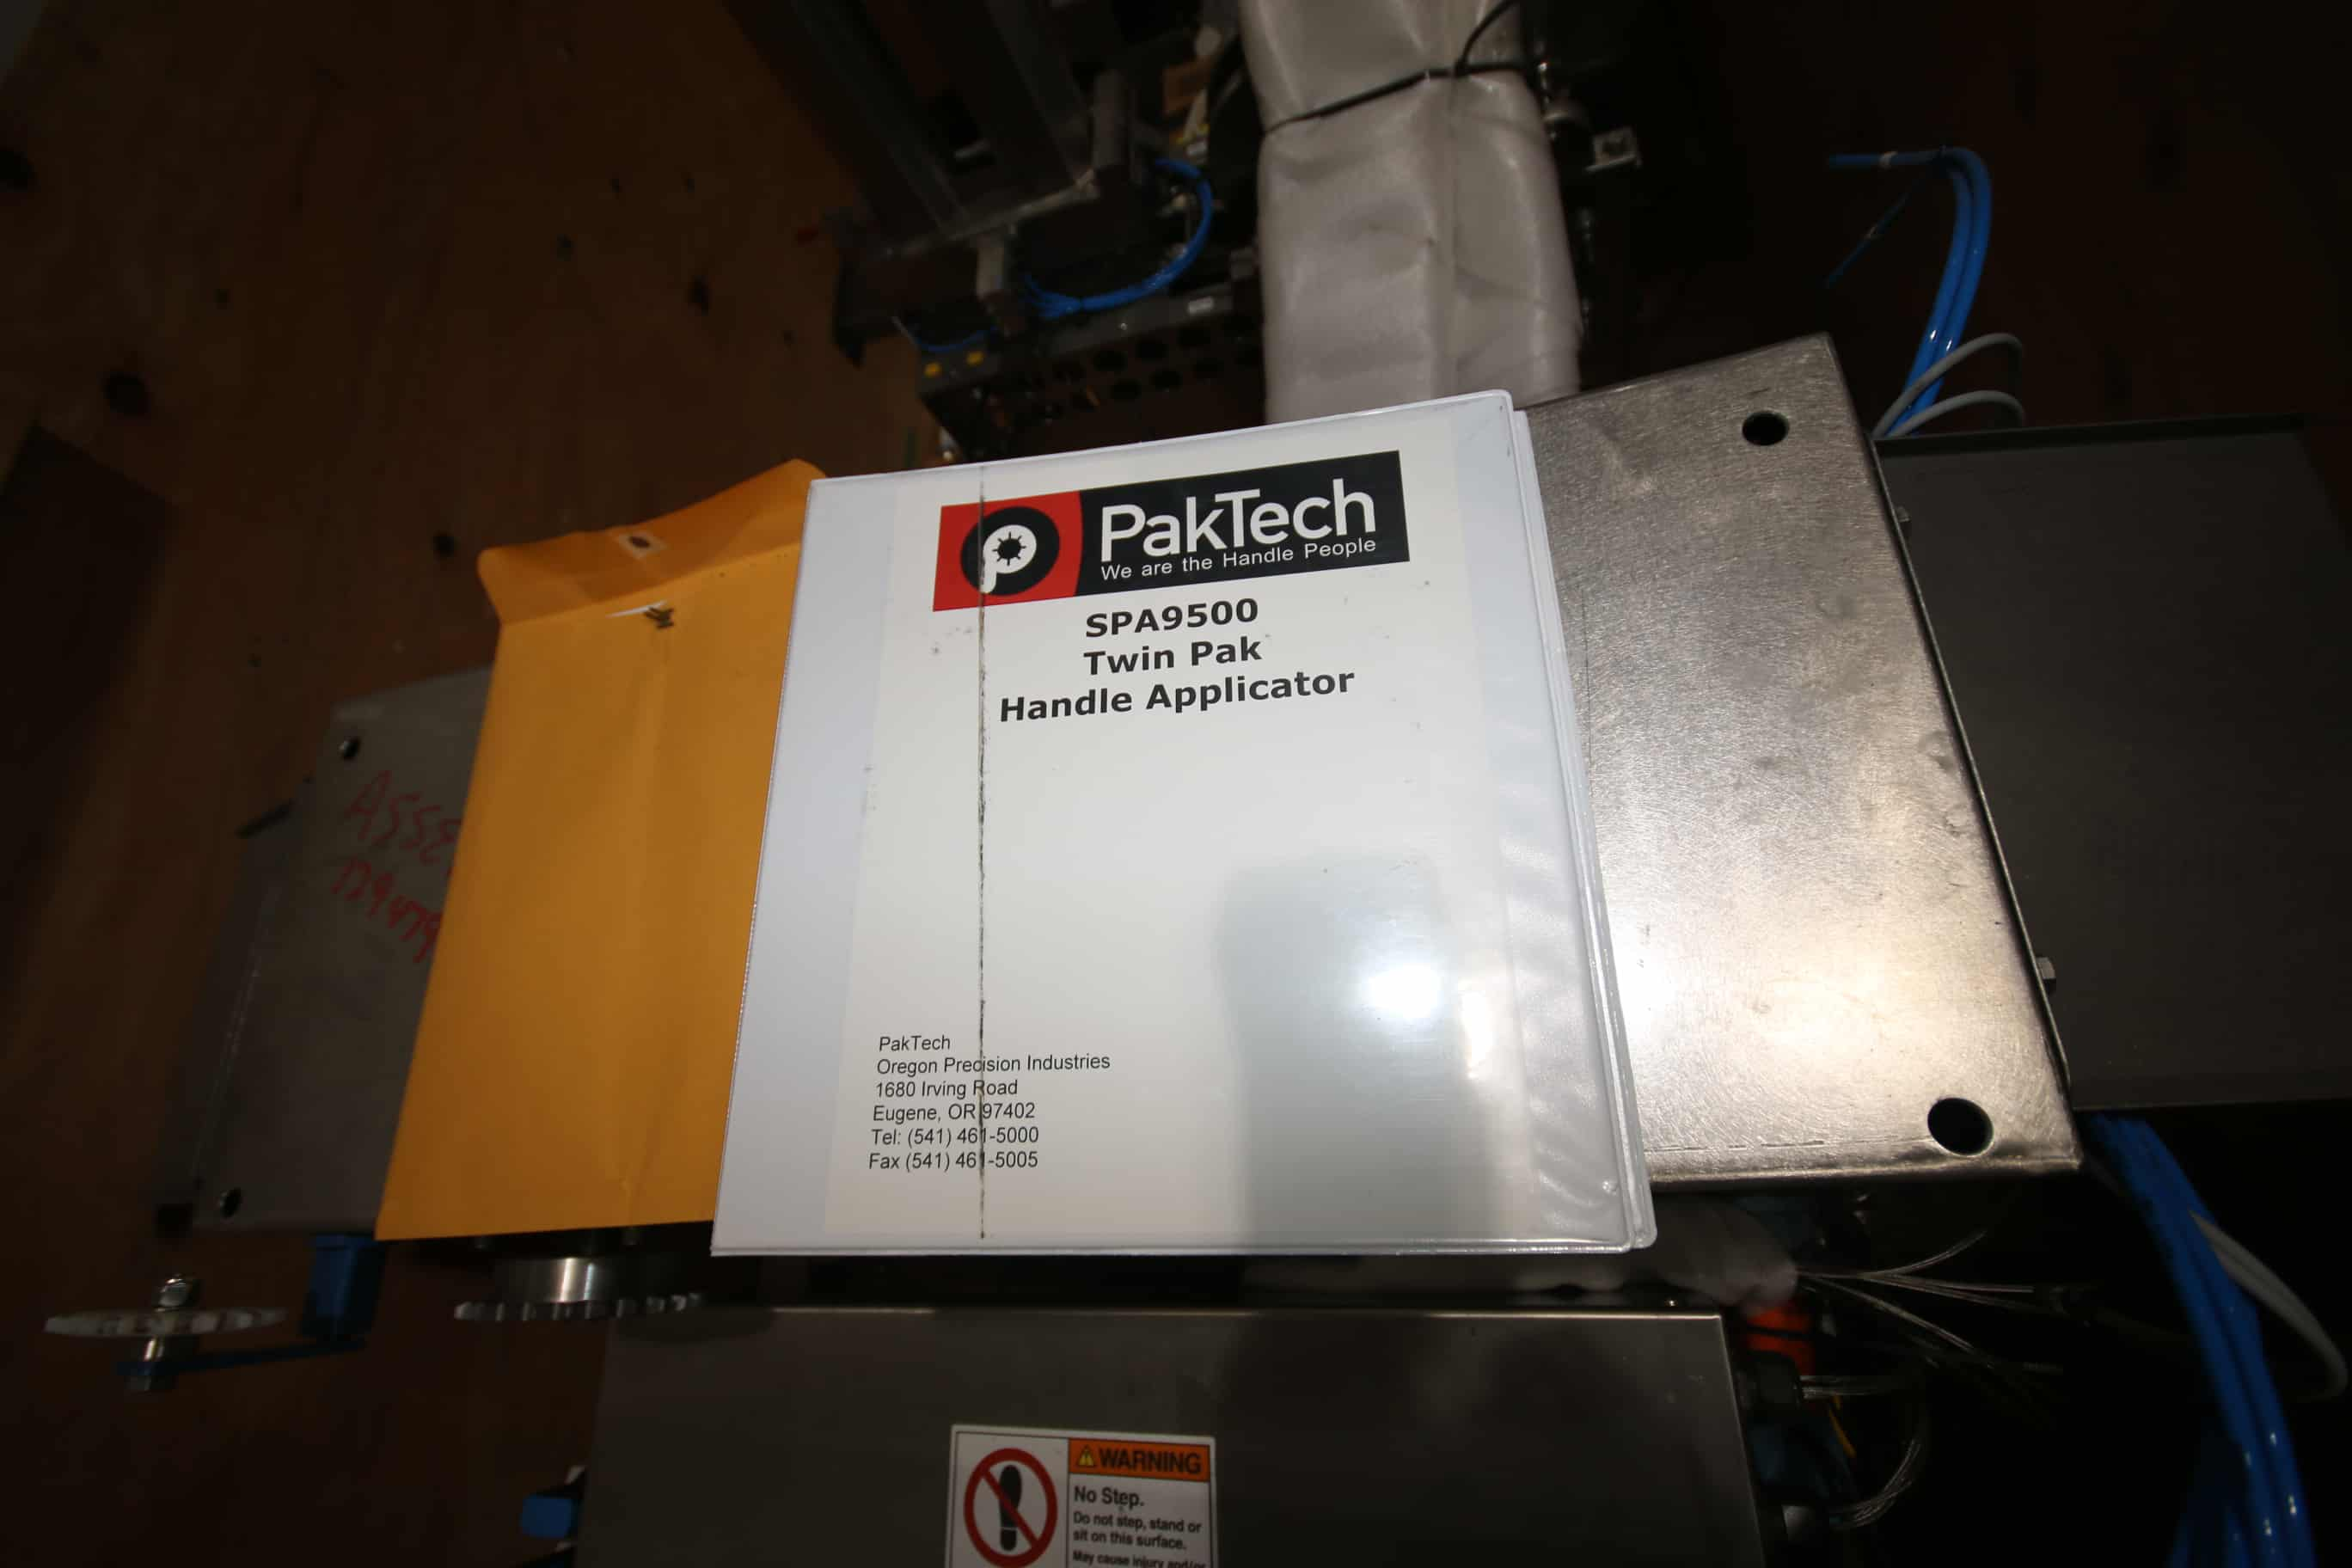 2013 Pak Tech Twin Pak Handle Applicator System, Model SPA9500, S/N SPA9500-01-08 with Allen Bradley Compact Logix PLC Controls, 240 V, 3 Phase Allen Bradley 4M VFD and Spare Parts (Crated)